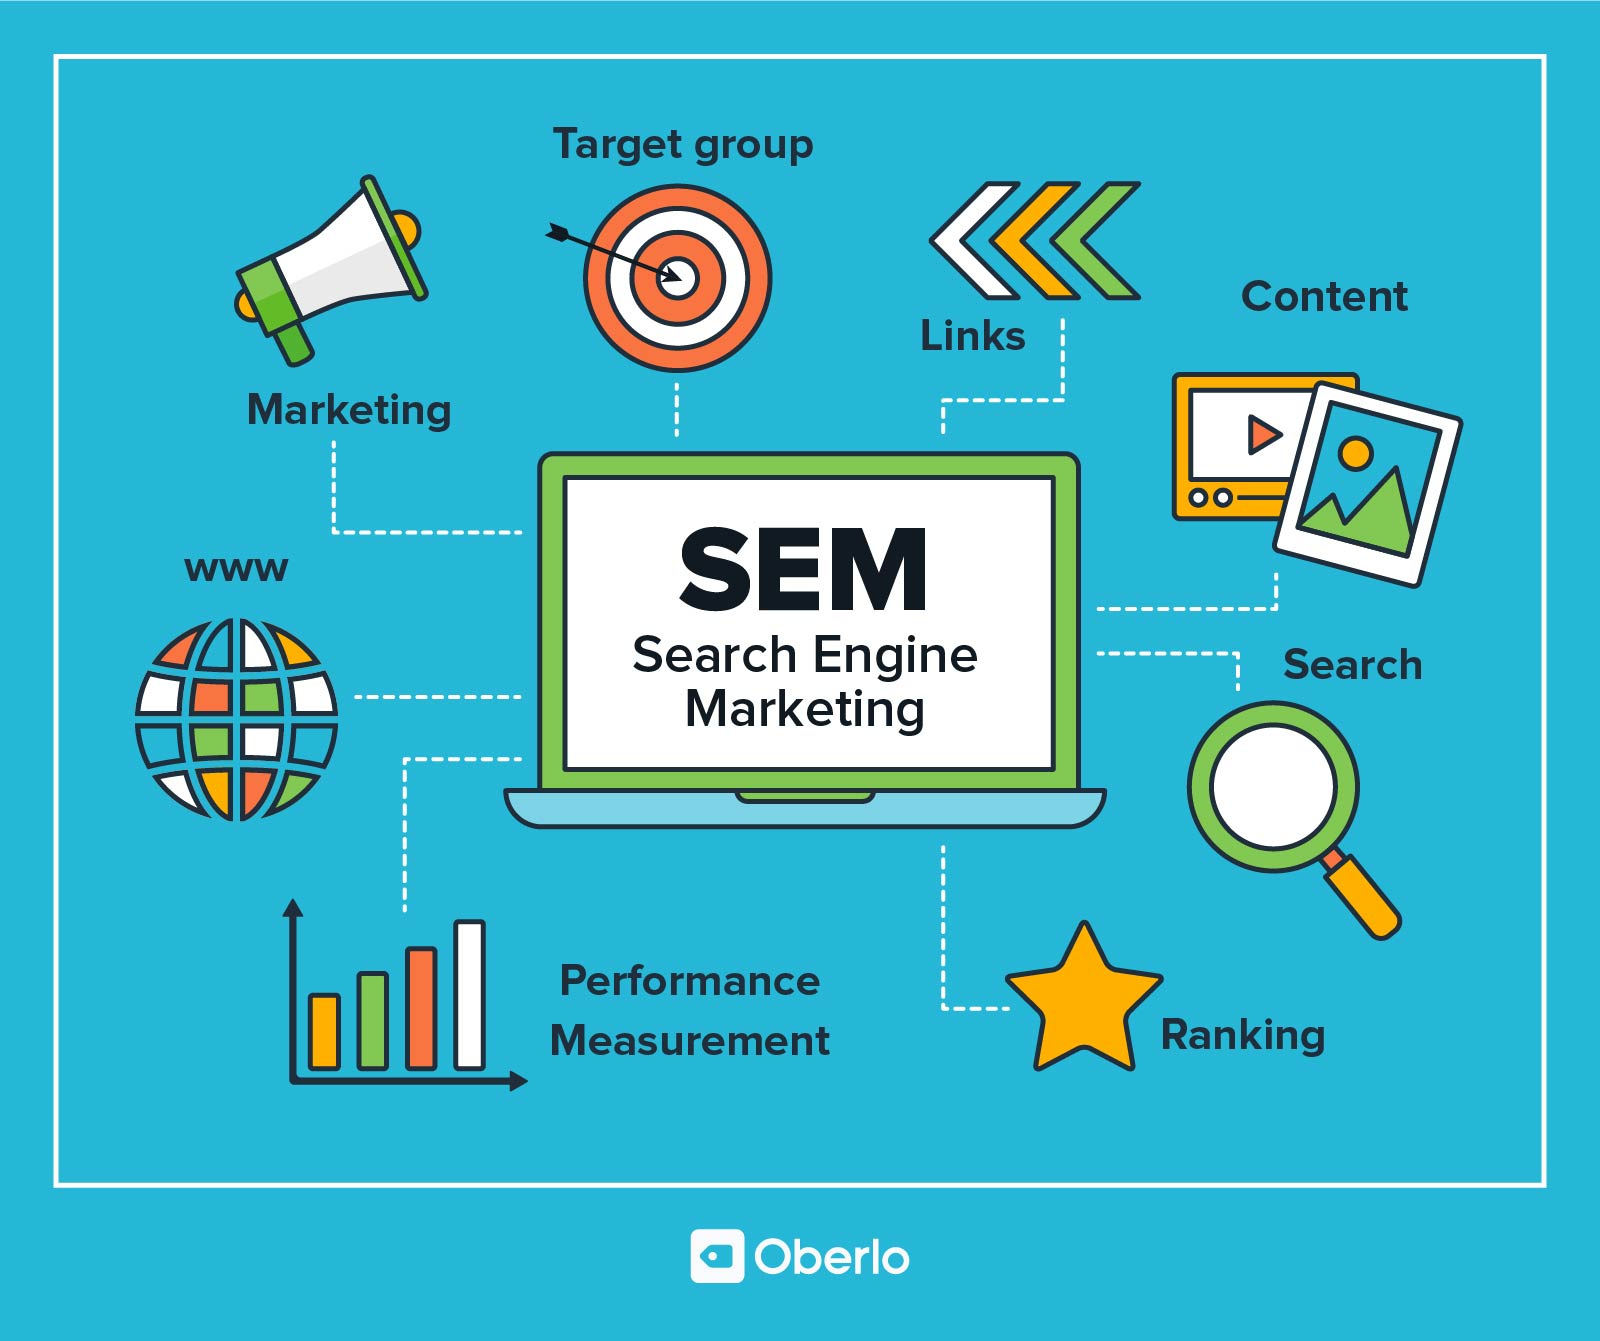 SEM - Search Engine Marketing